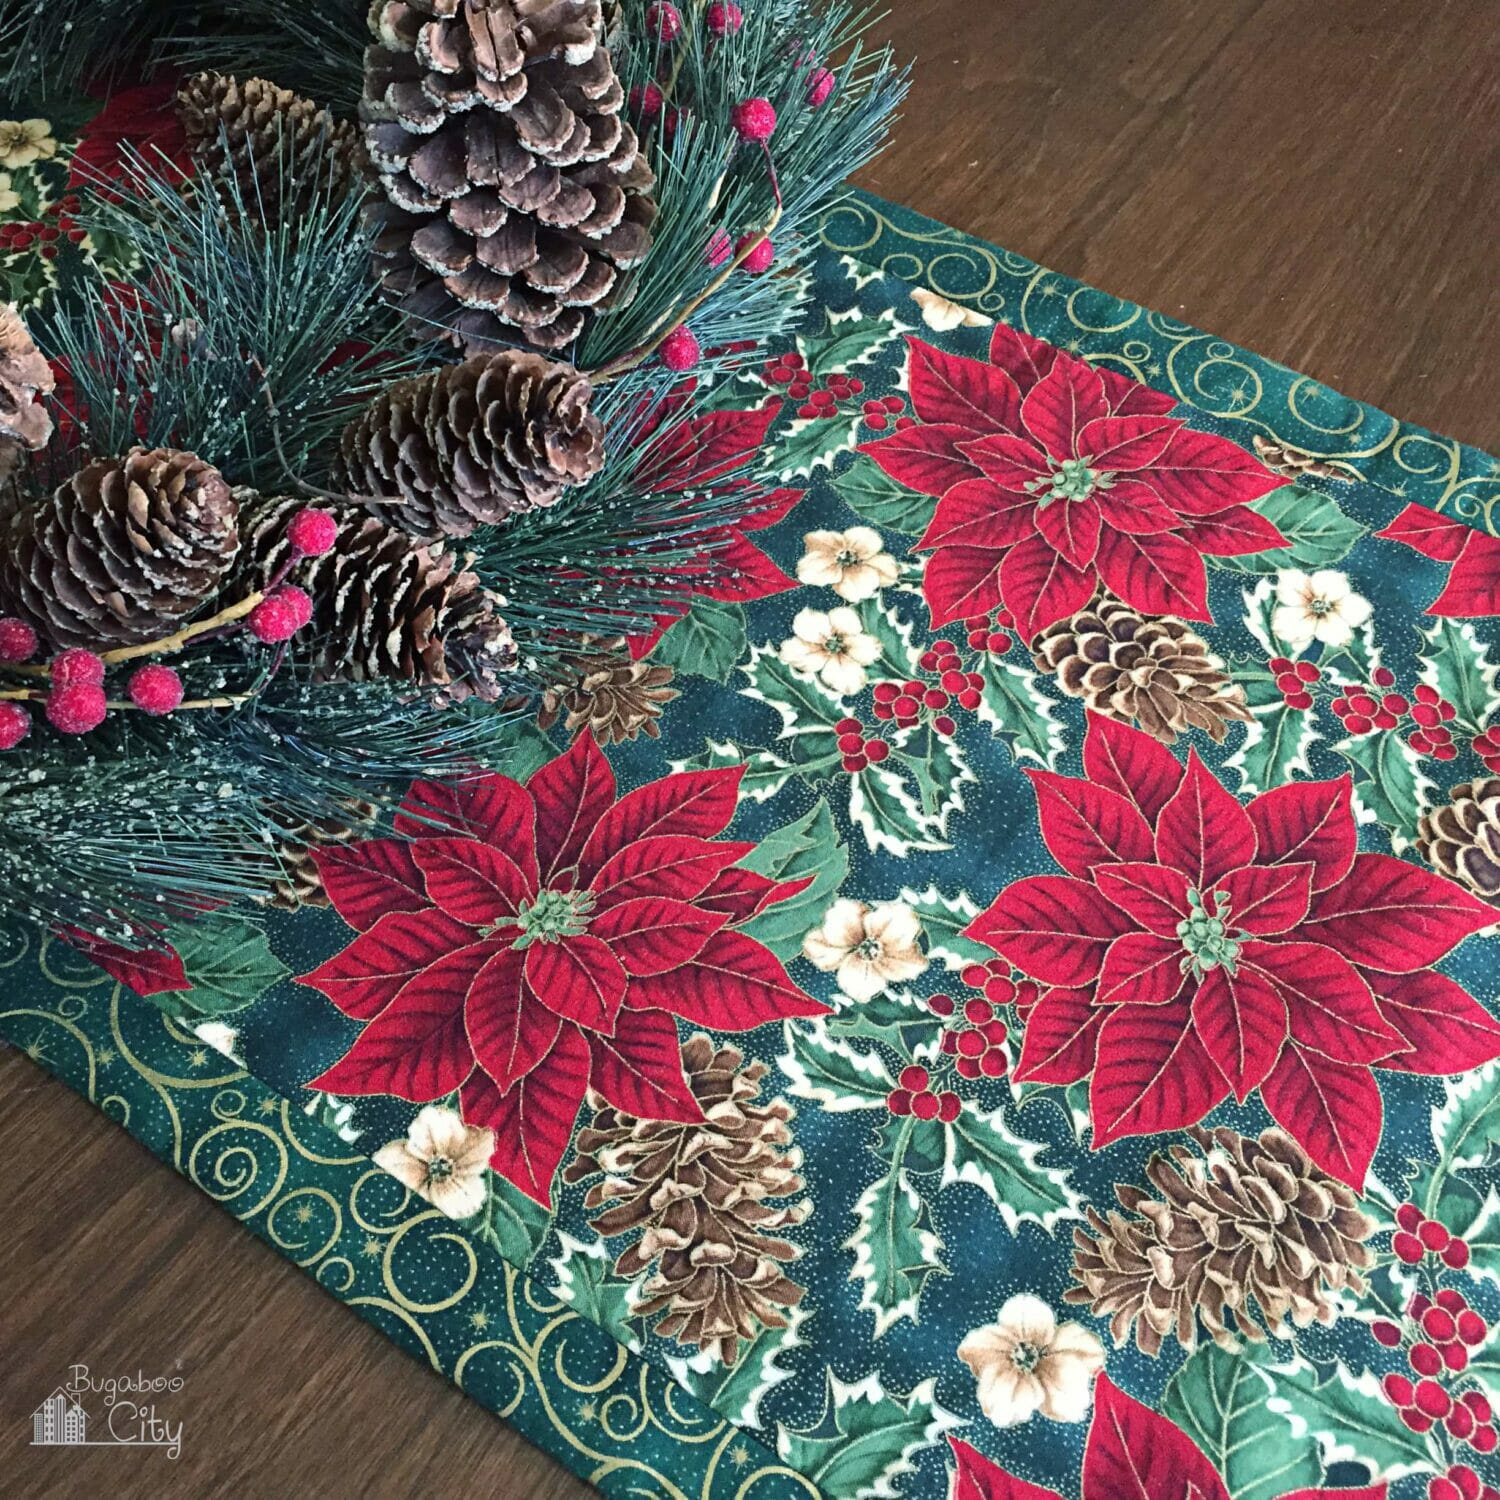 Red and green printed fabric table runner on a wooden table.